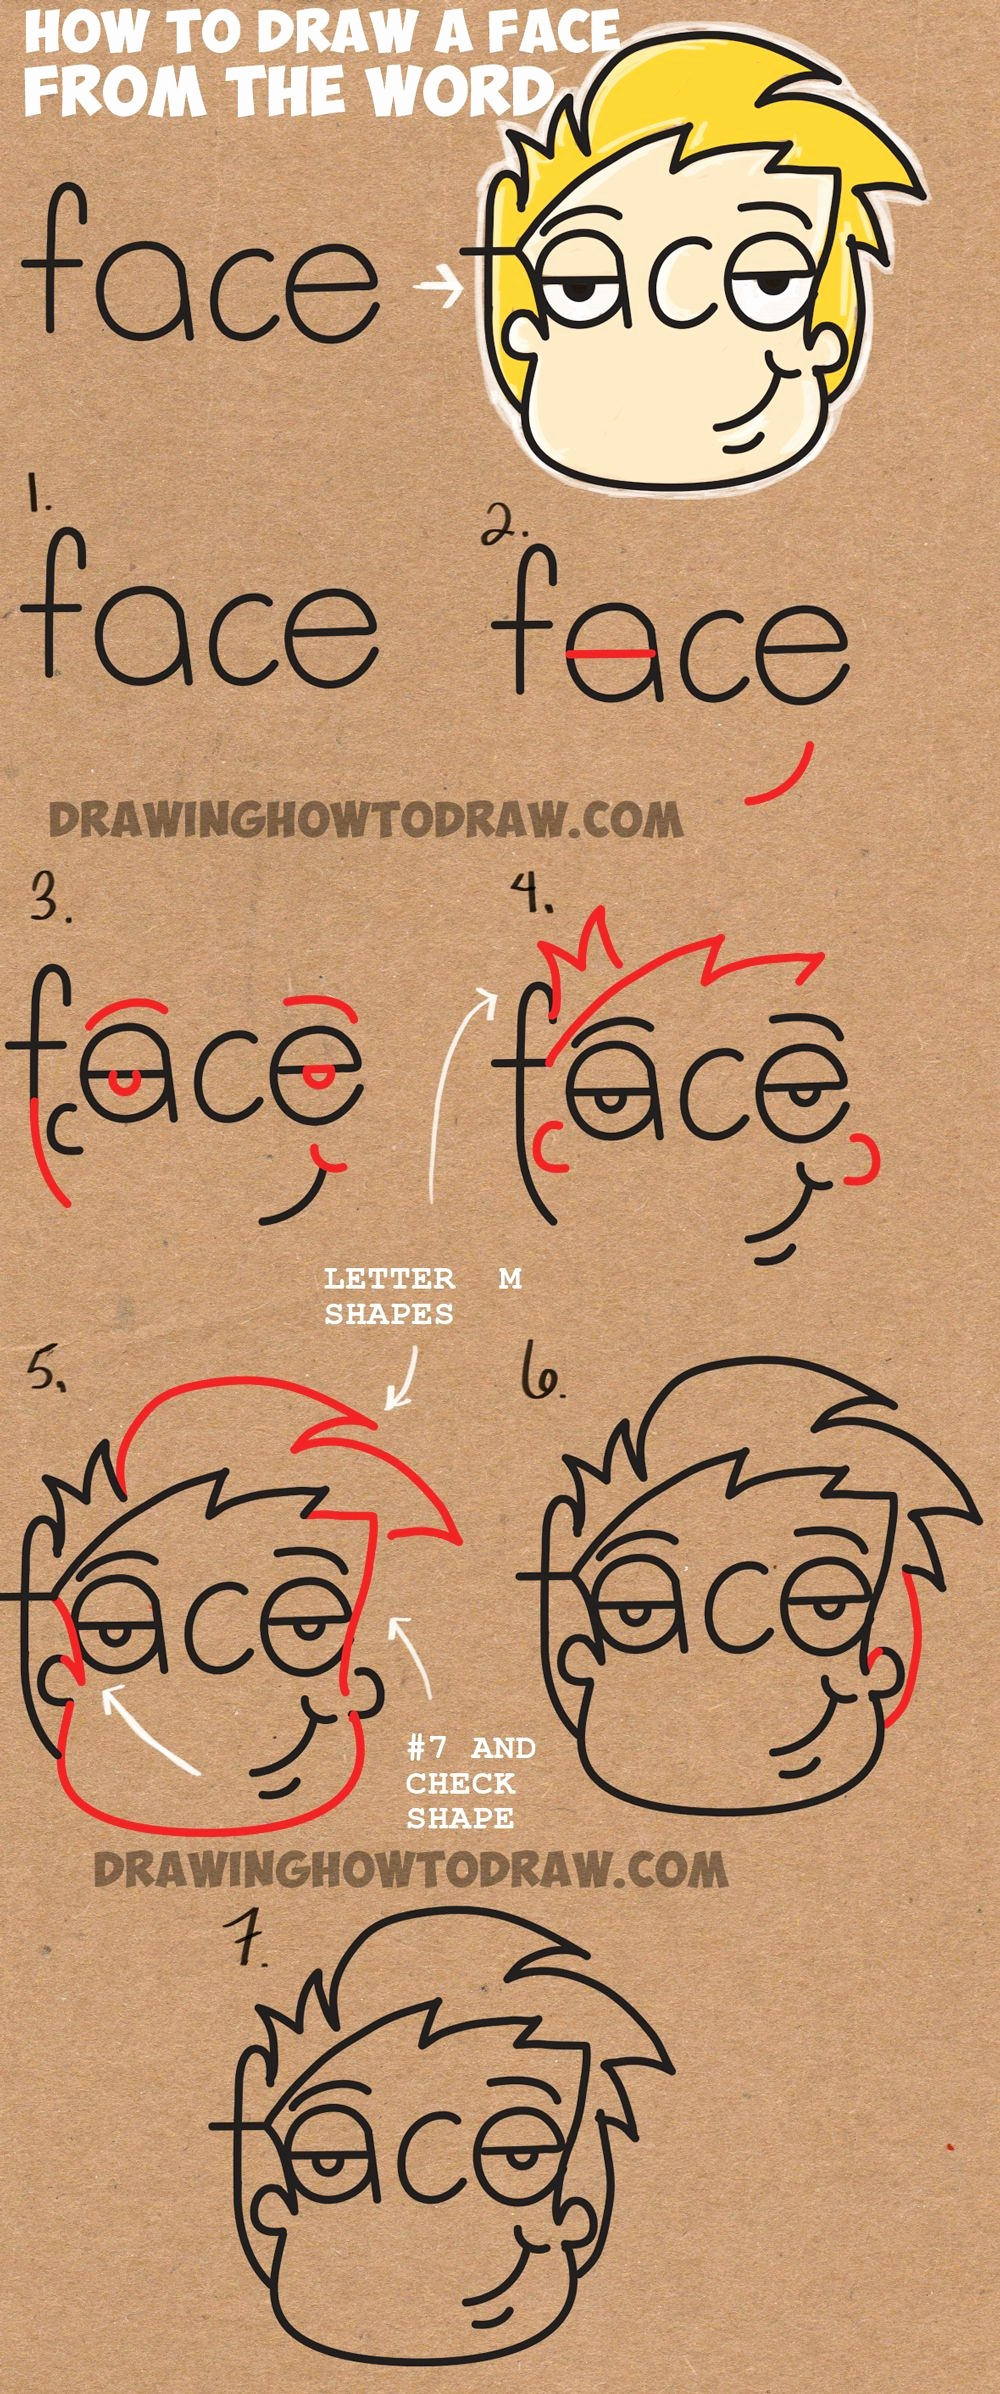 Comic Zeichnen Lernen Schön How to Draw Cartoon Faces From the Word Face Easy Step by Step